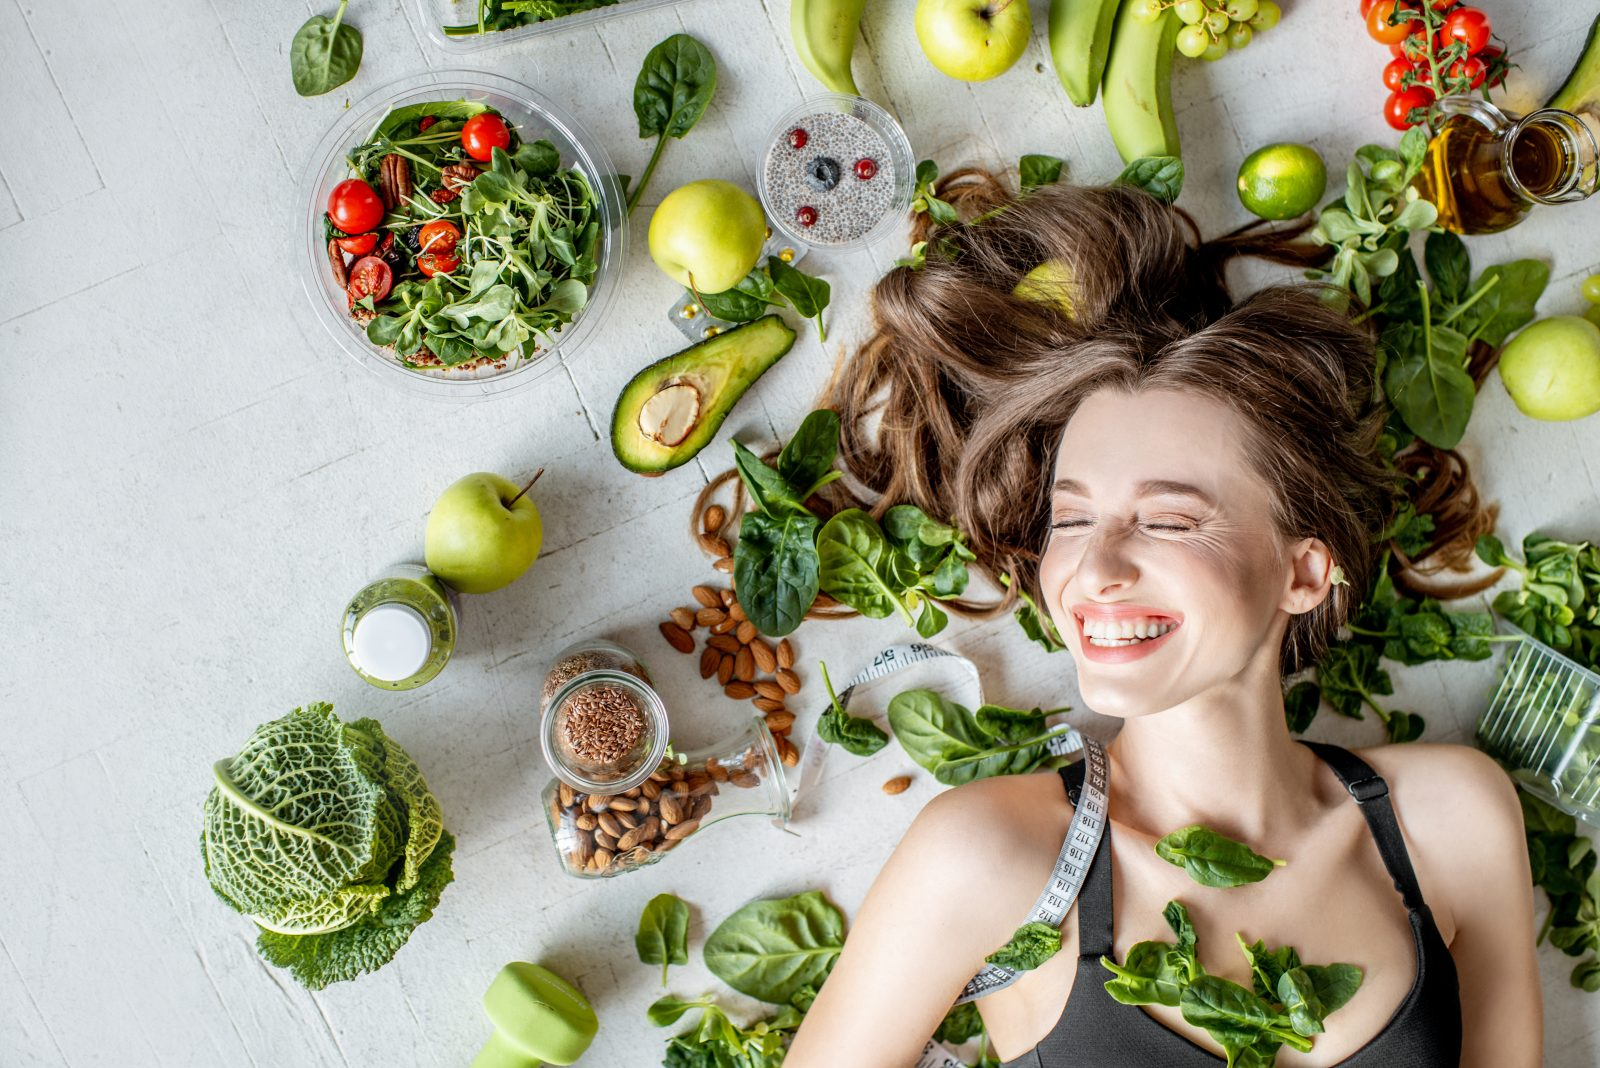 Beauty portrait of a woman surrounded by various healthy food lying on the floor.